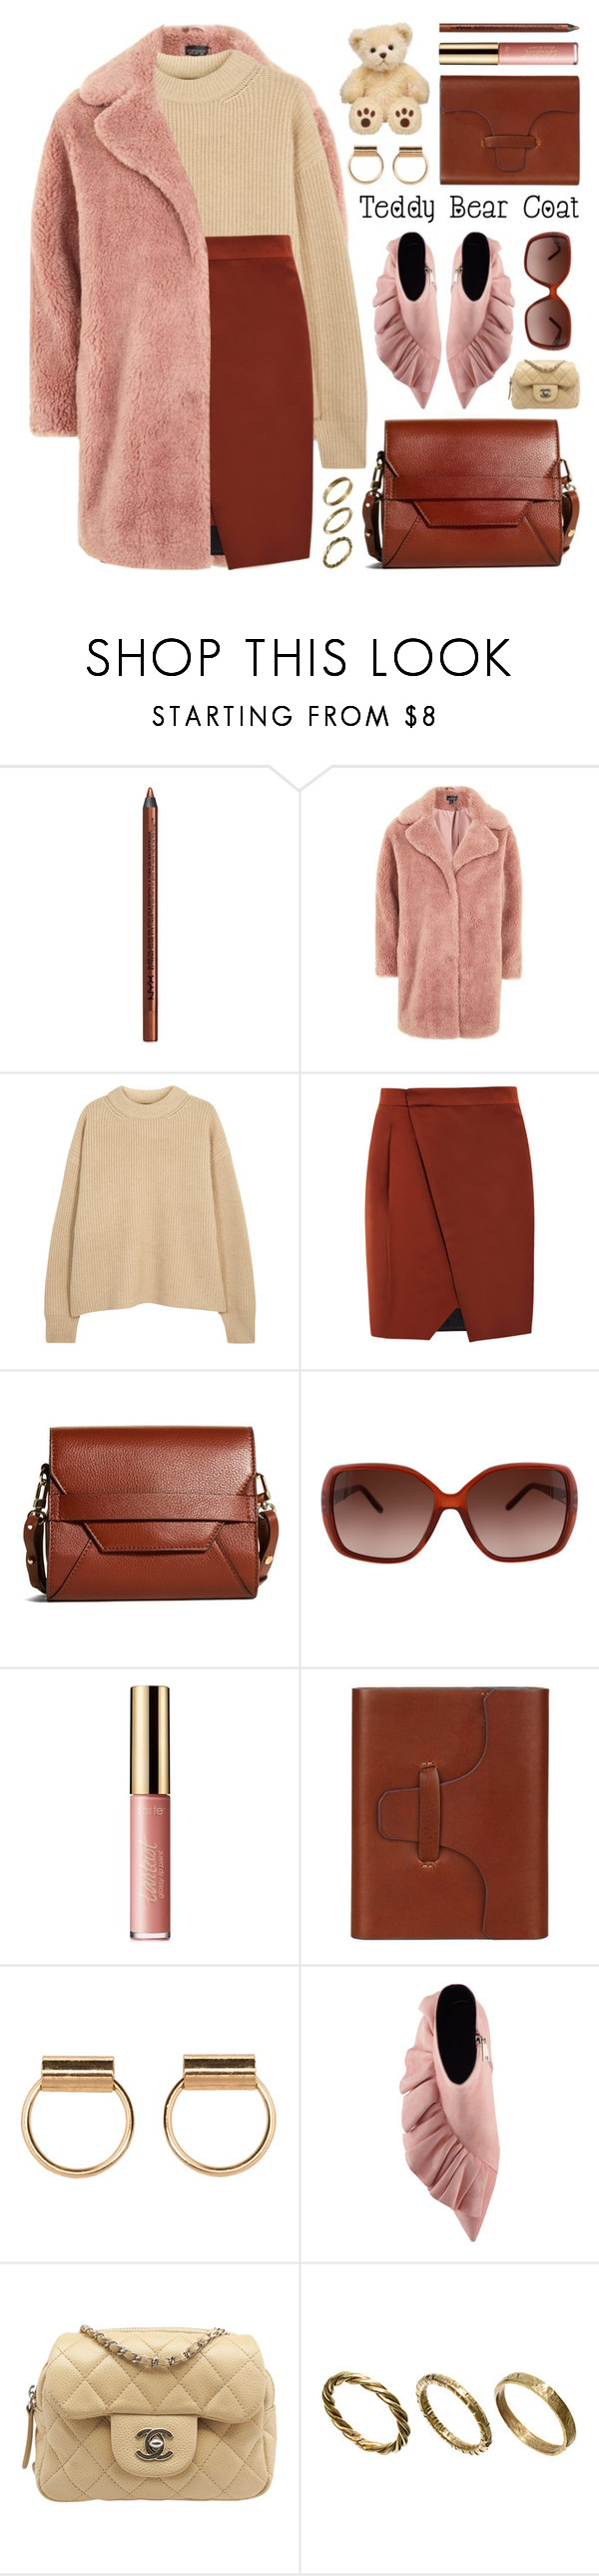 """snuggle up: teddy bear coats"" by jesuisunlapin ❤ liked on Polyvore featuring NYX, Topshop, The Row, Sportmax, Brooks Brothers, Chloé, tarte, Hayden, Chanel and Made"